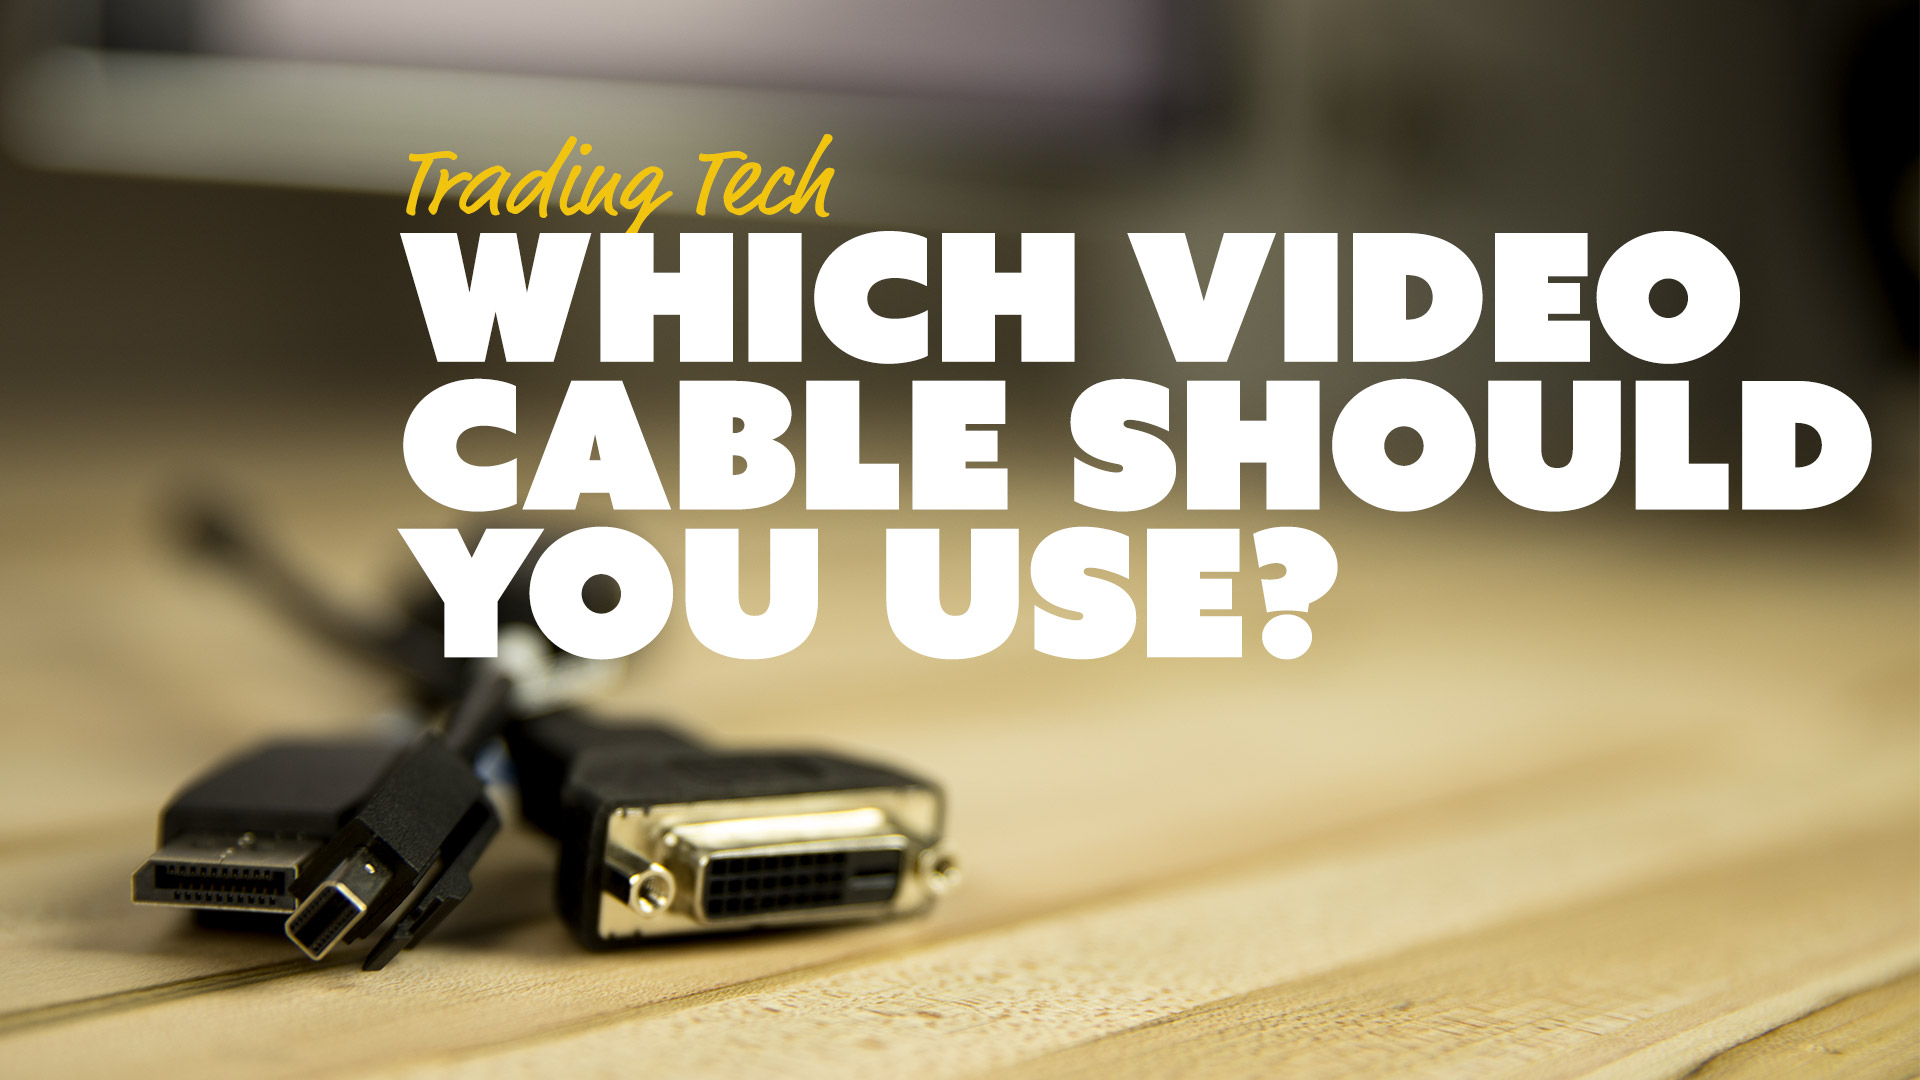 Which Video Cable Should You Use?